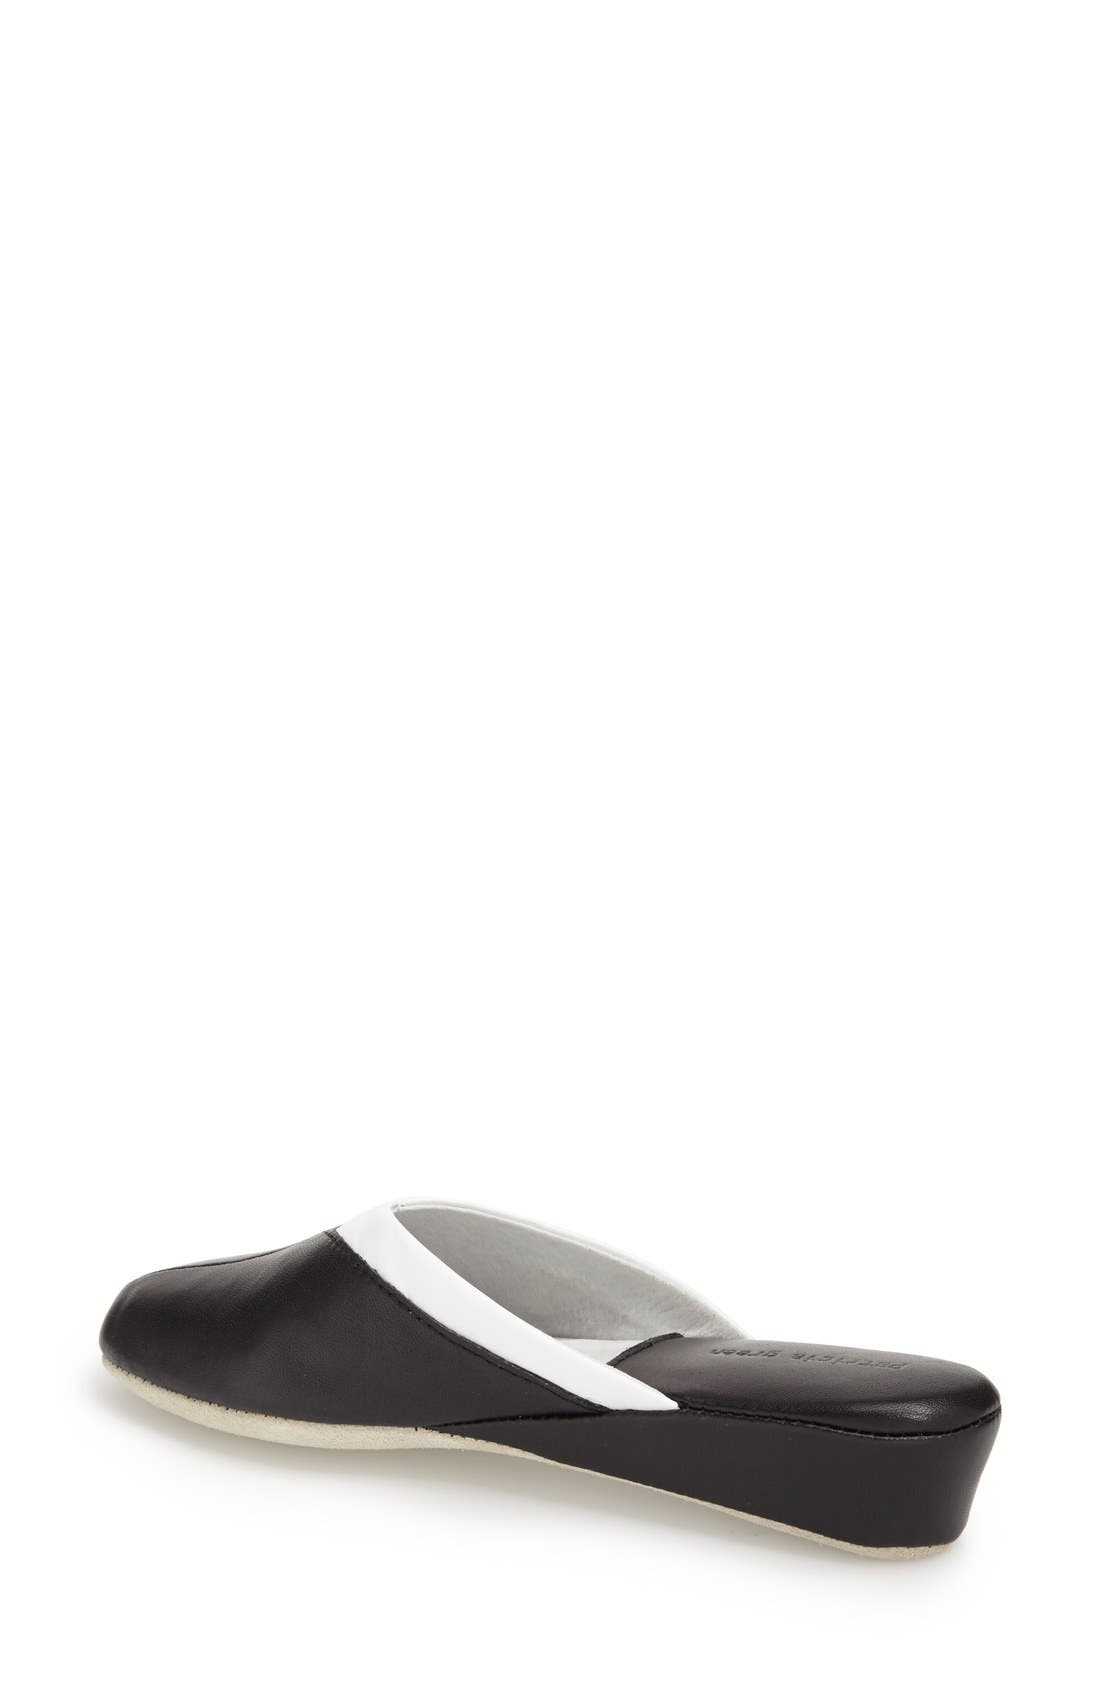 'Valerie' Wedge Mule Slipper,                             Alternate thumbnail 3, color,                             Black Leather